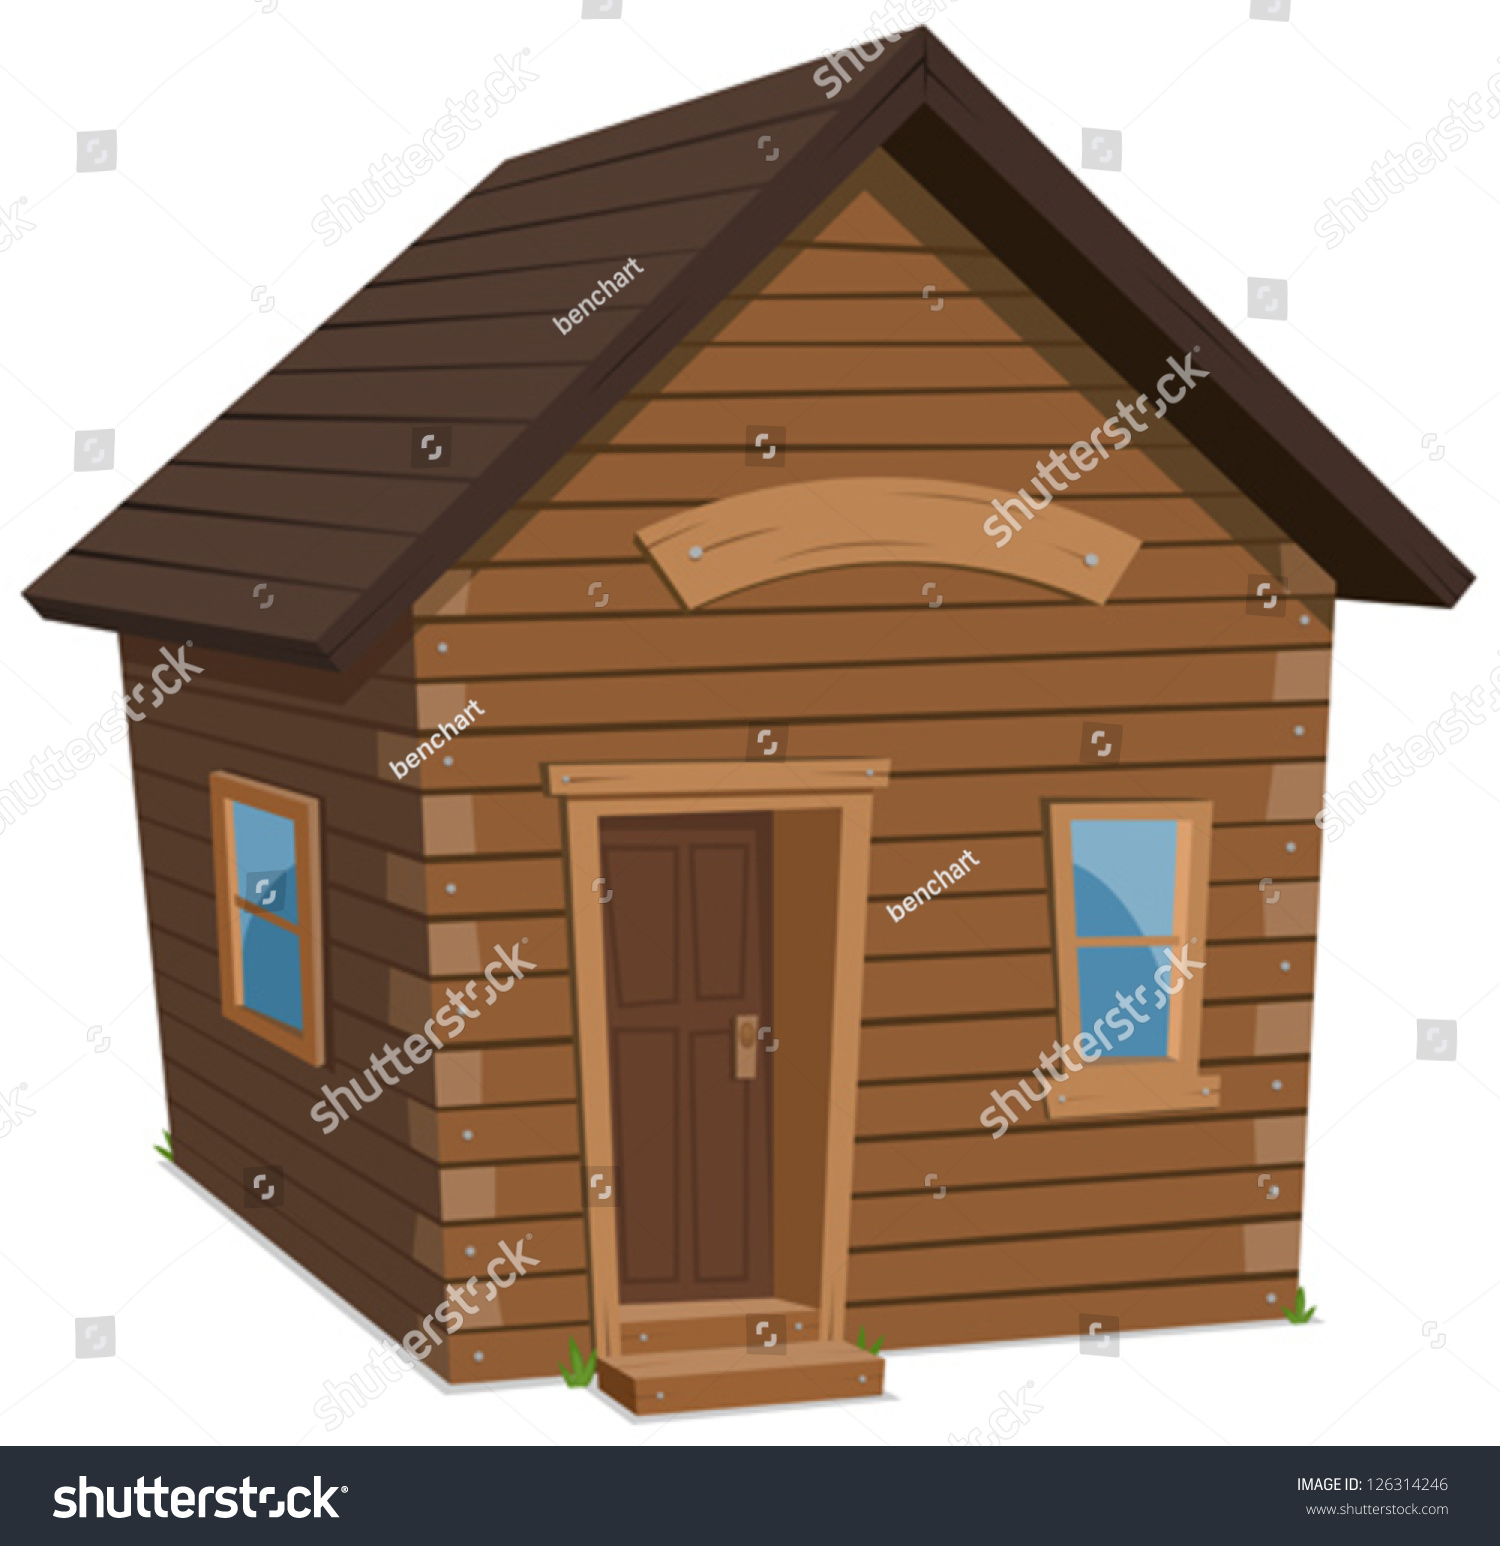 Wood house lifestyle illustration of a simple cartoon spring or winter wooden little forest lodge